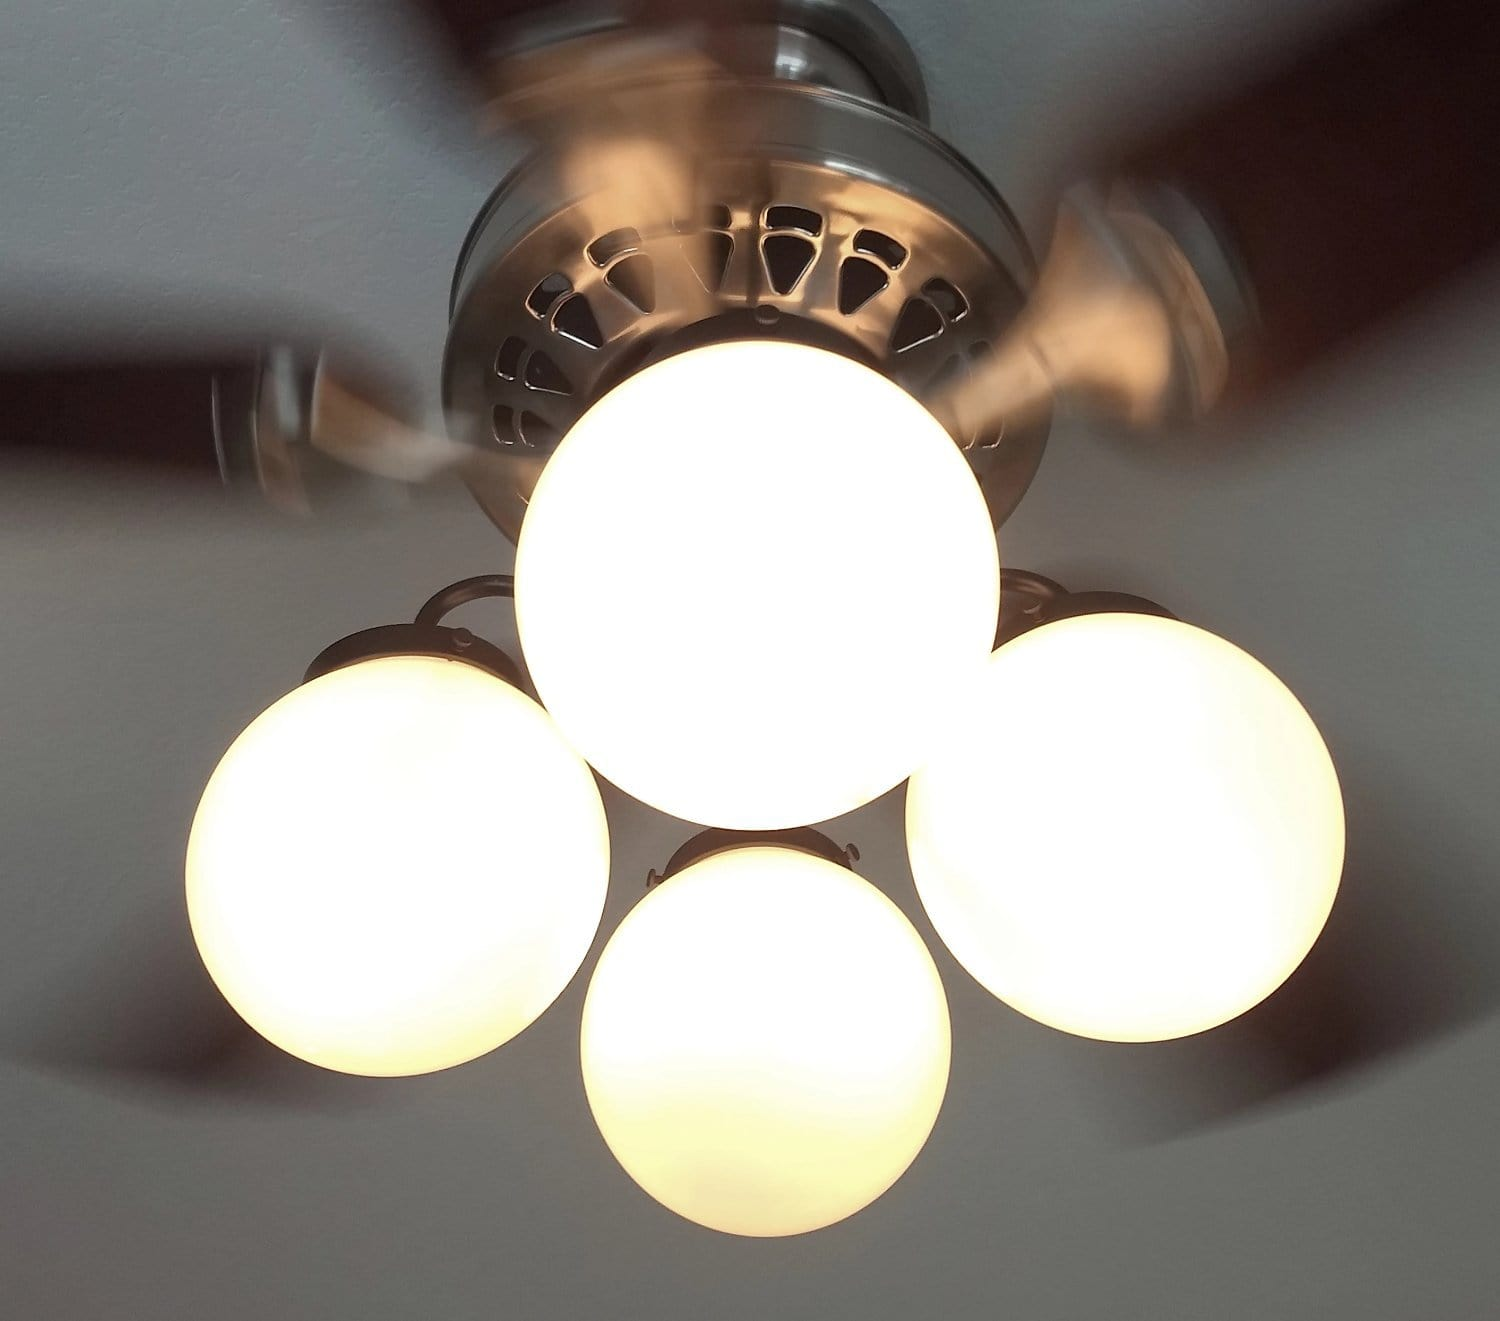 Ceiling Fan Light Kit Of Modern Milk Glass Globes The